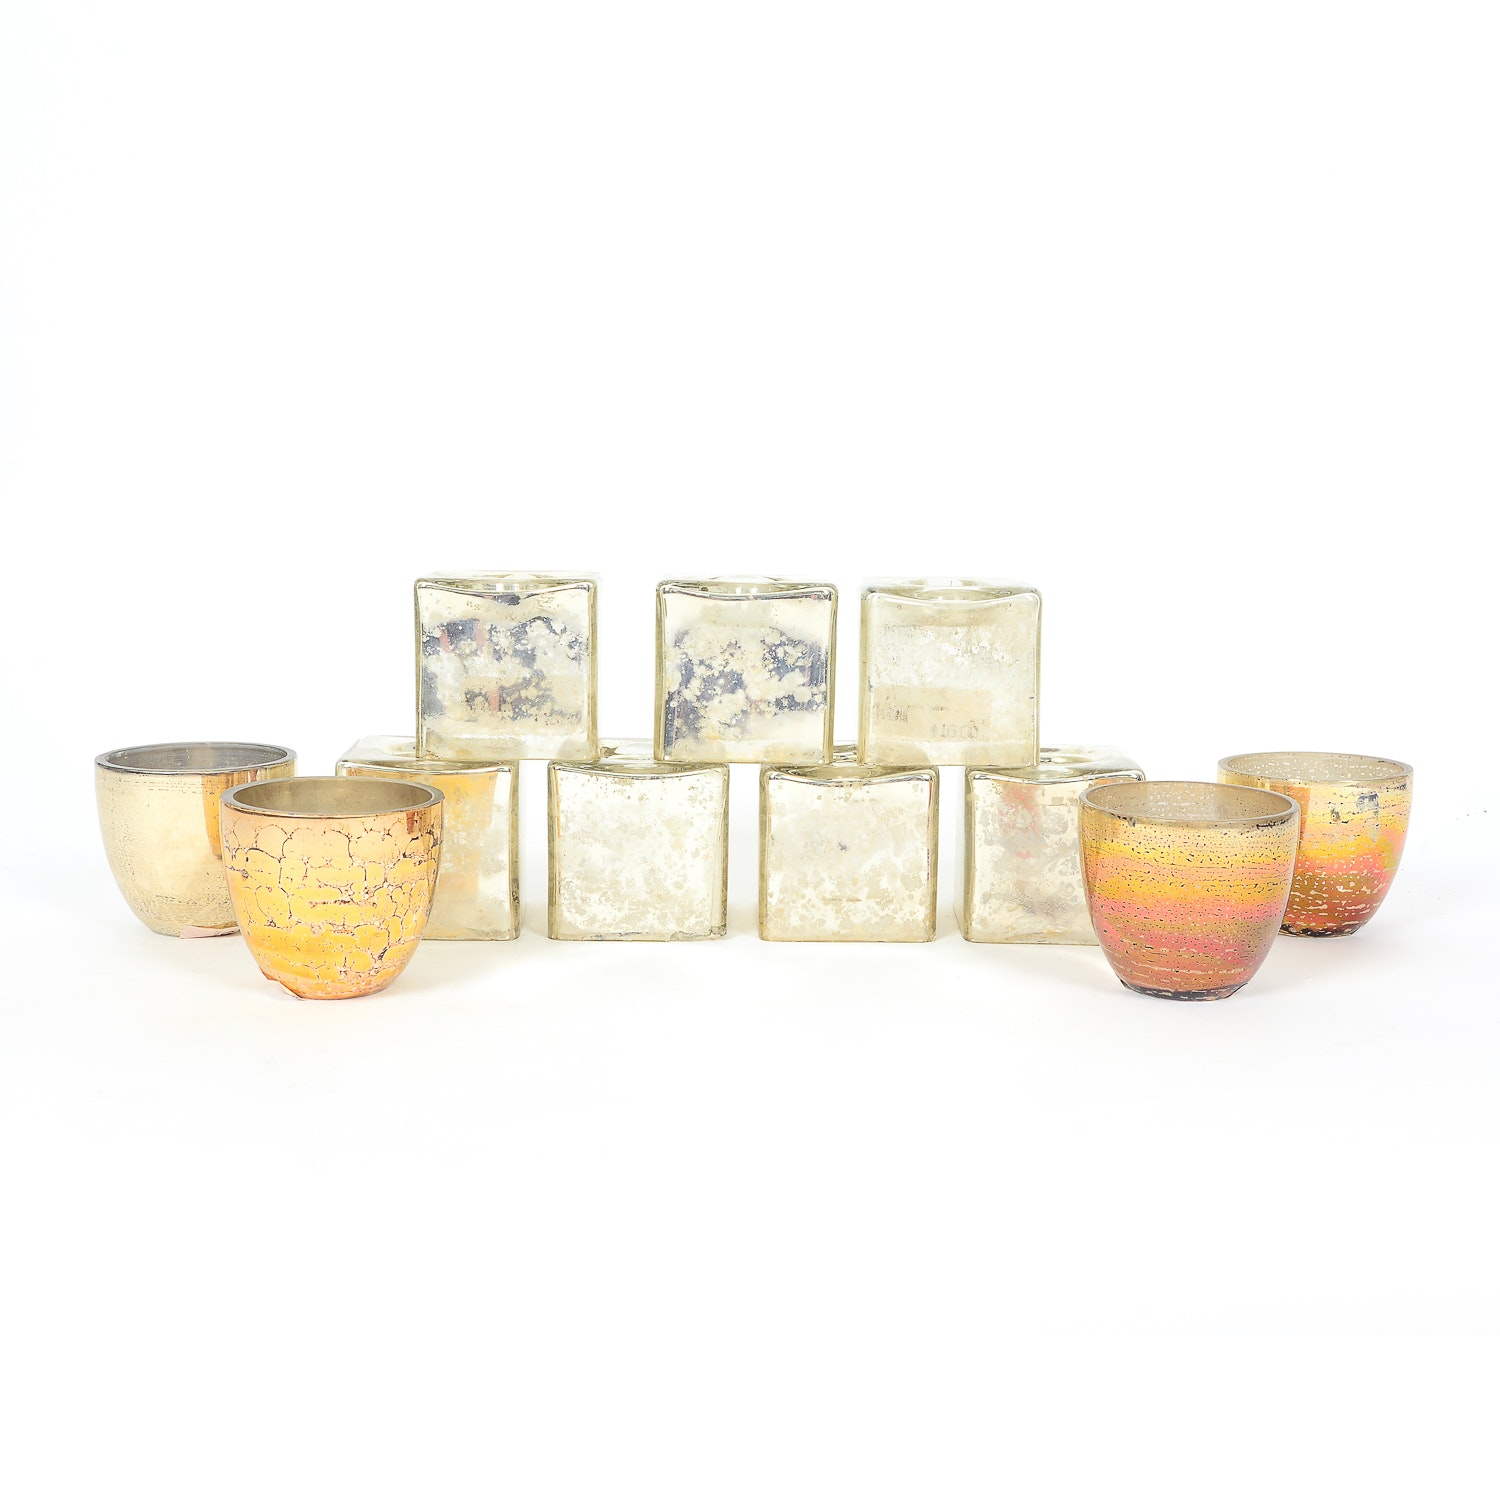 Collection of Glass Candle Holders